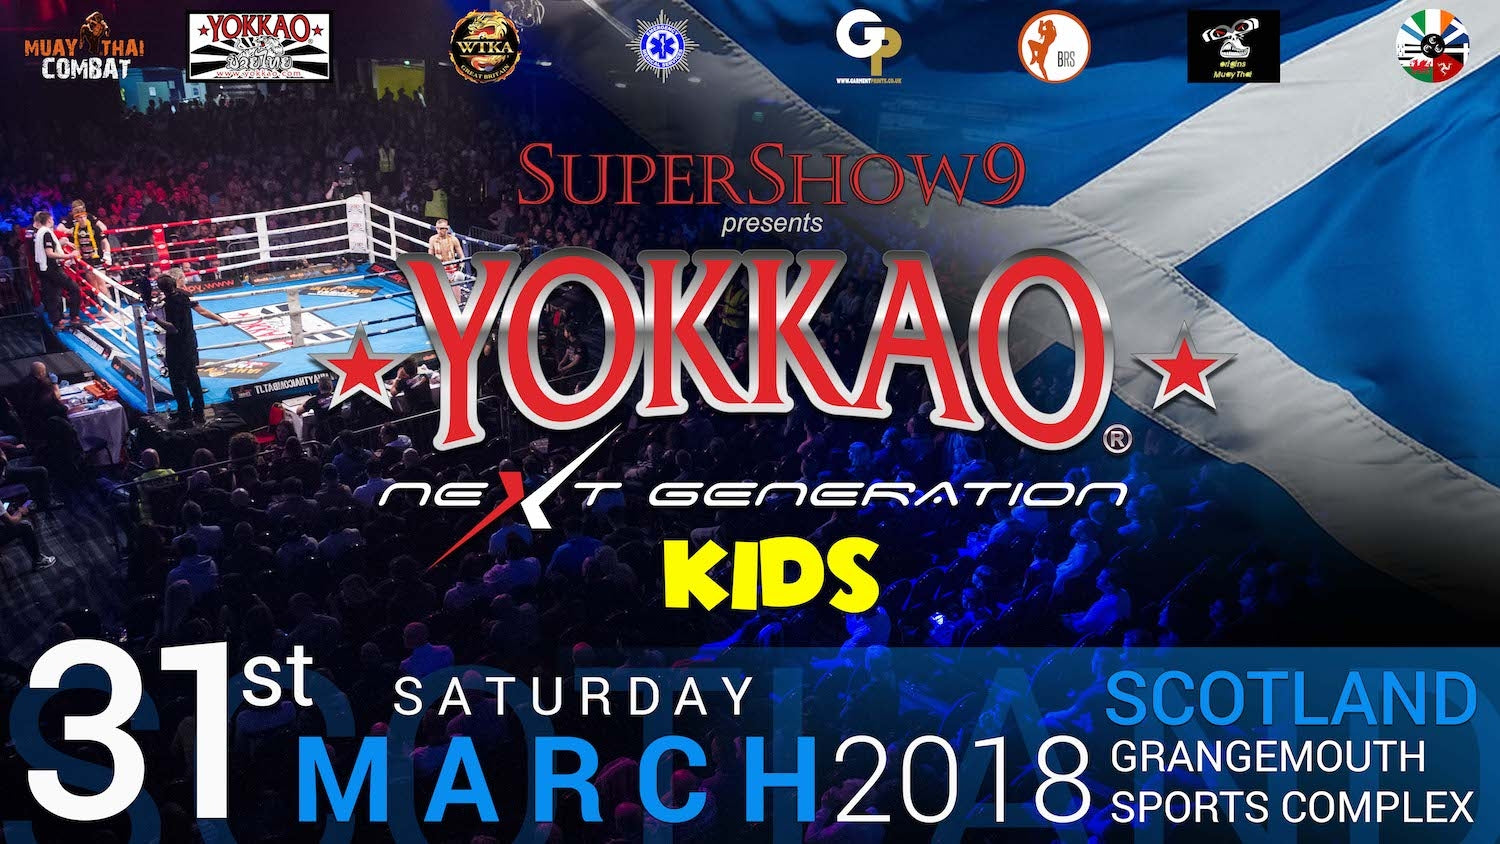 YOKKAO Next Generation Kids in Scotland